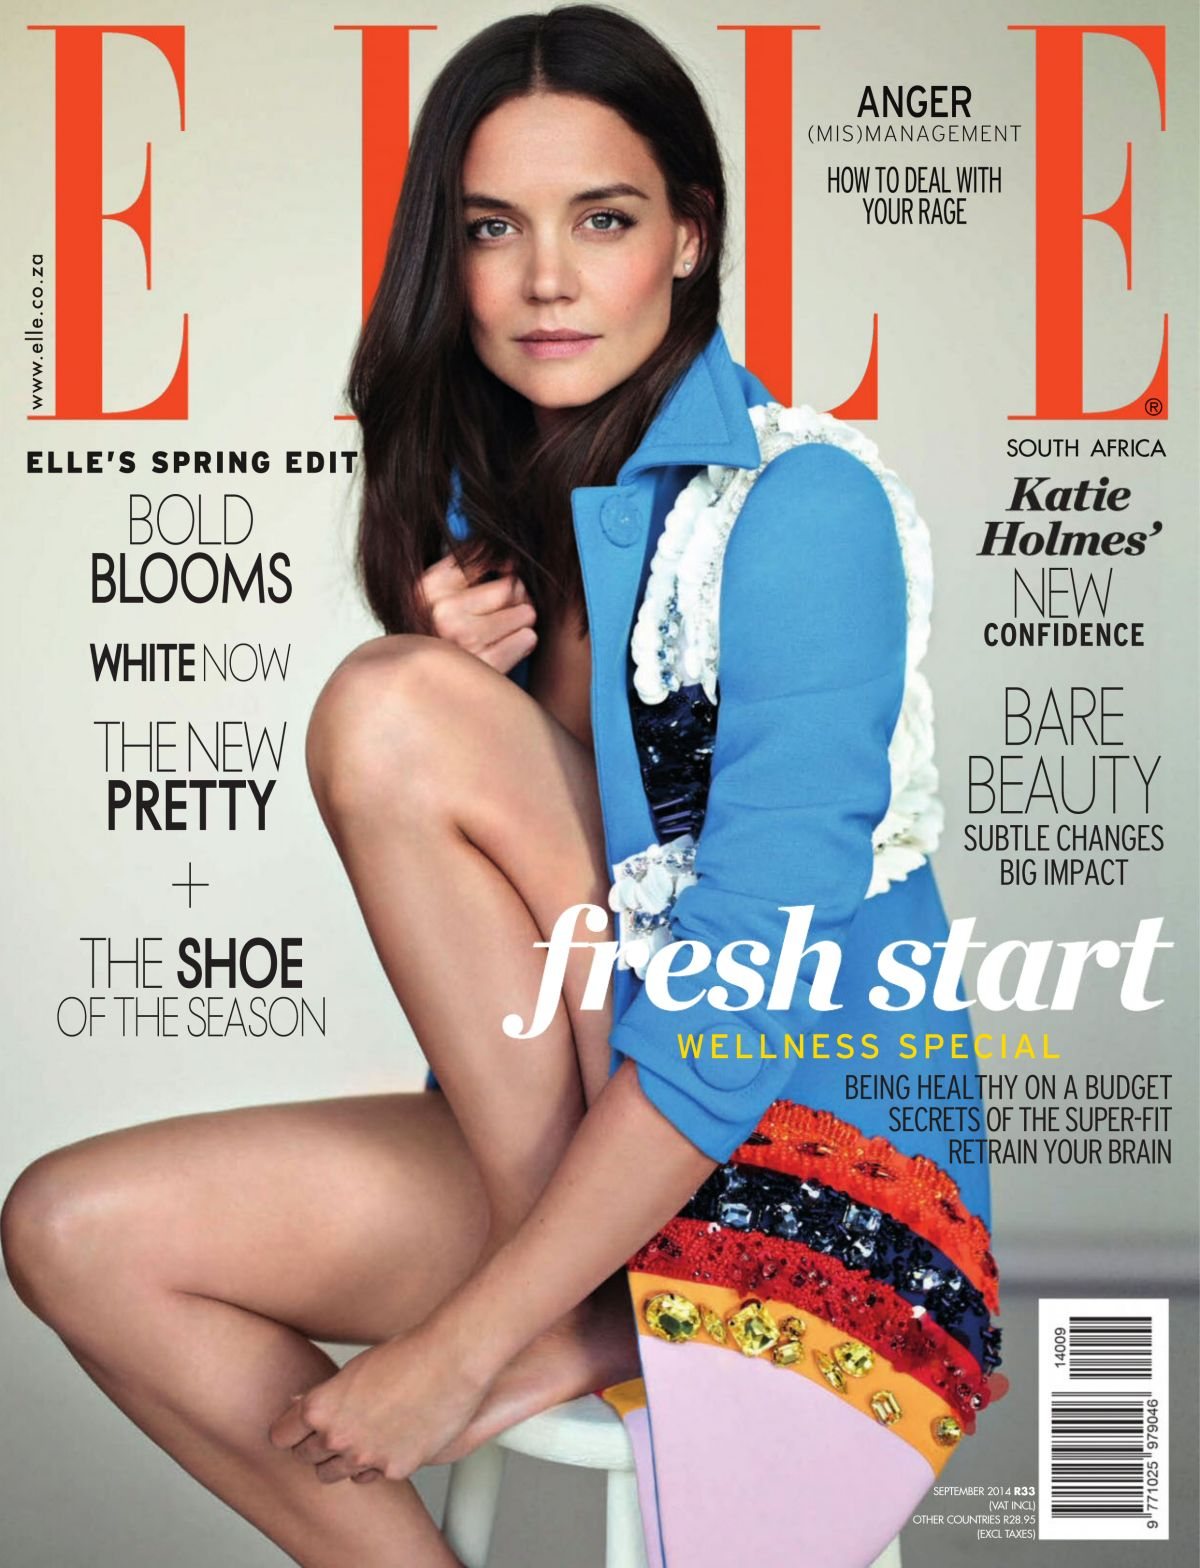 KATIE HOLMES in Elle Magazine, South Africa September 2014 Issue